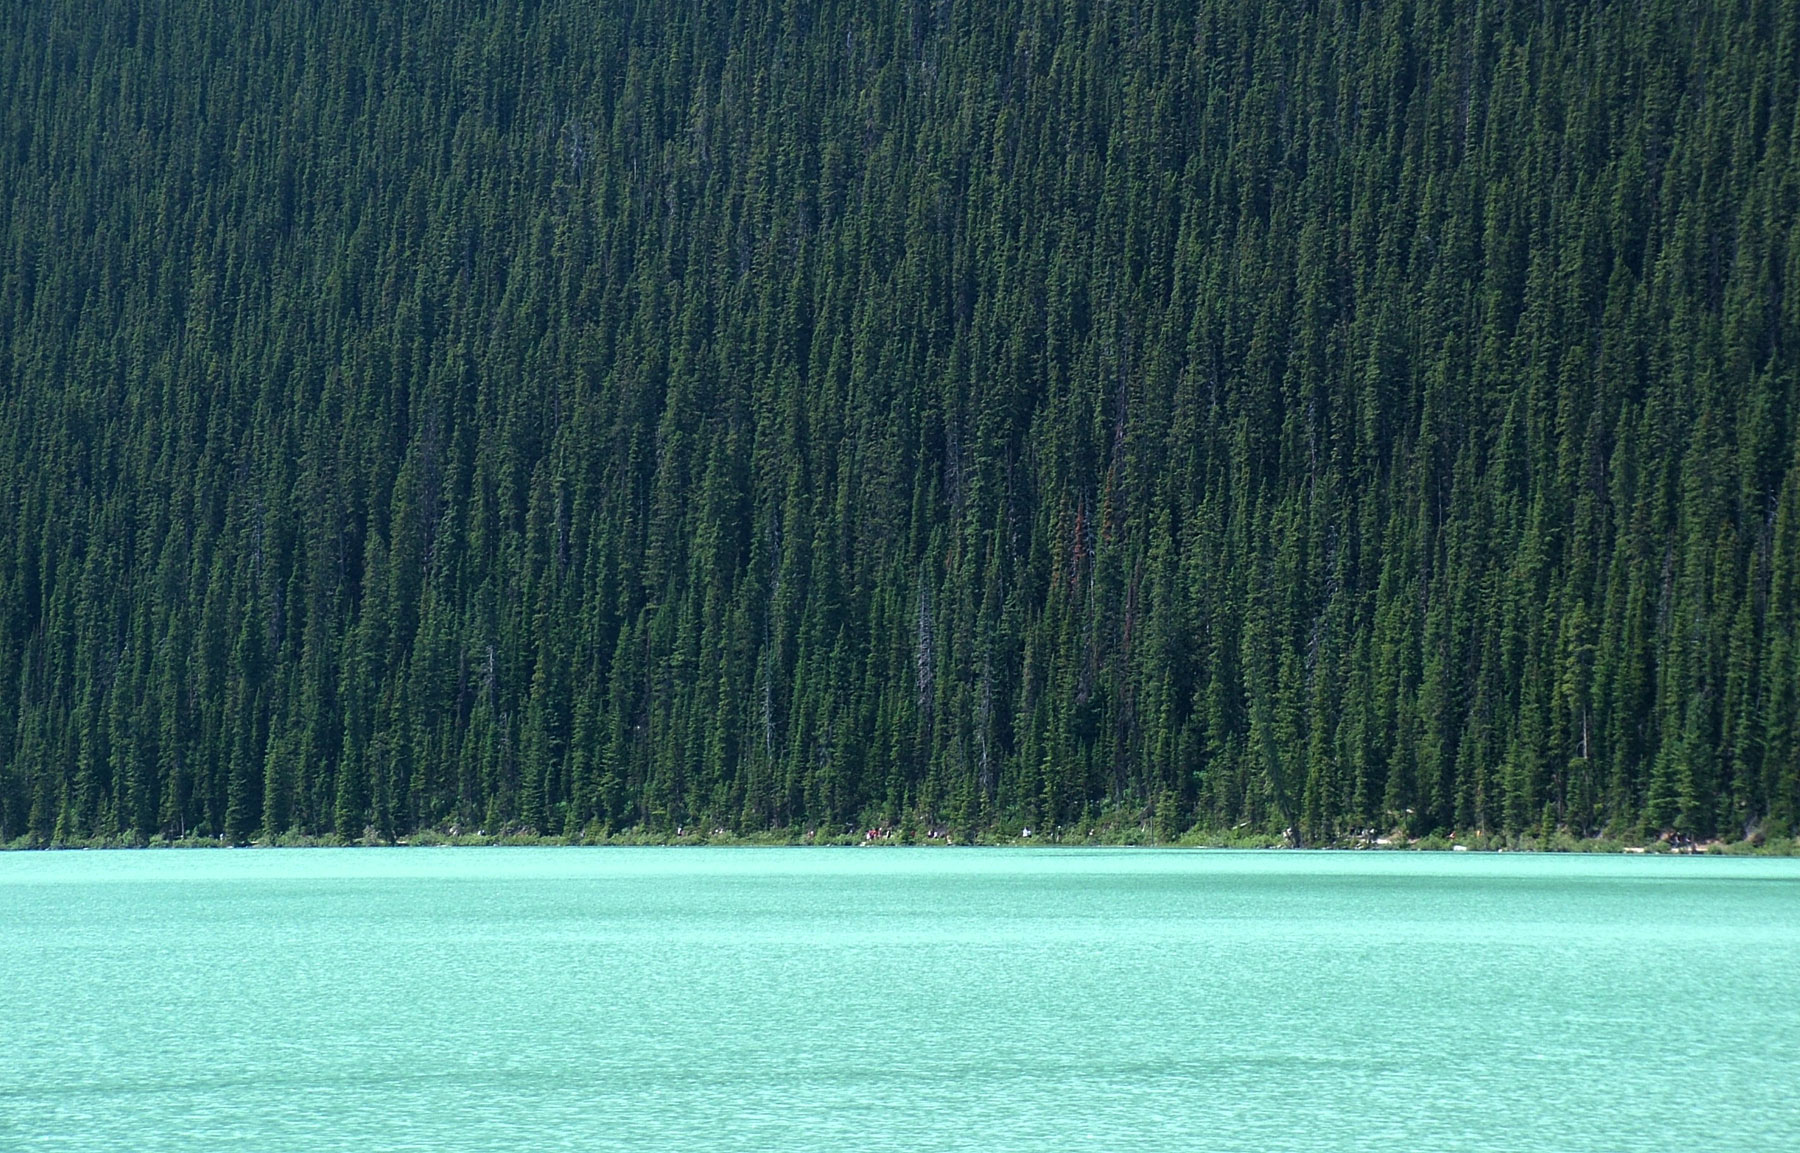 Lake Louise, Water, Woods, Trees, Canada, HQ Photo